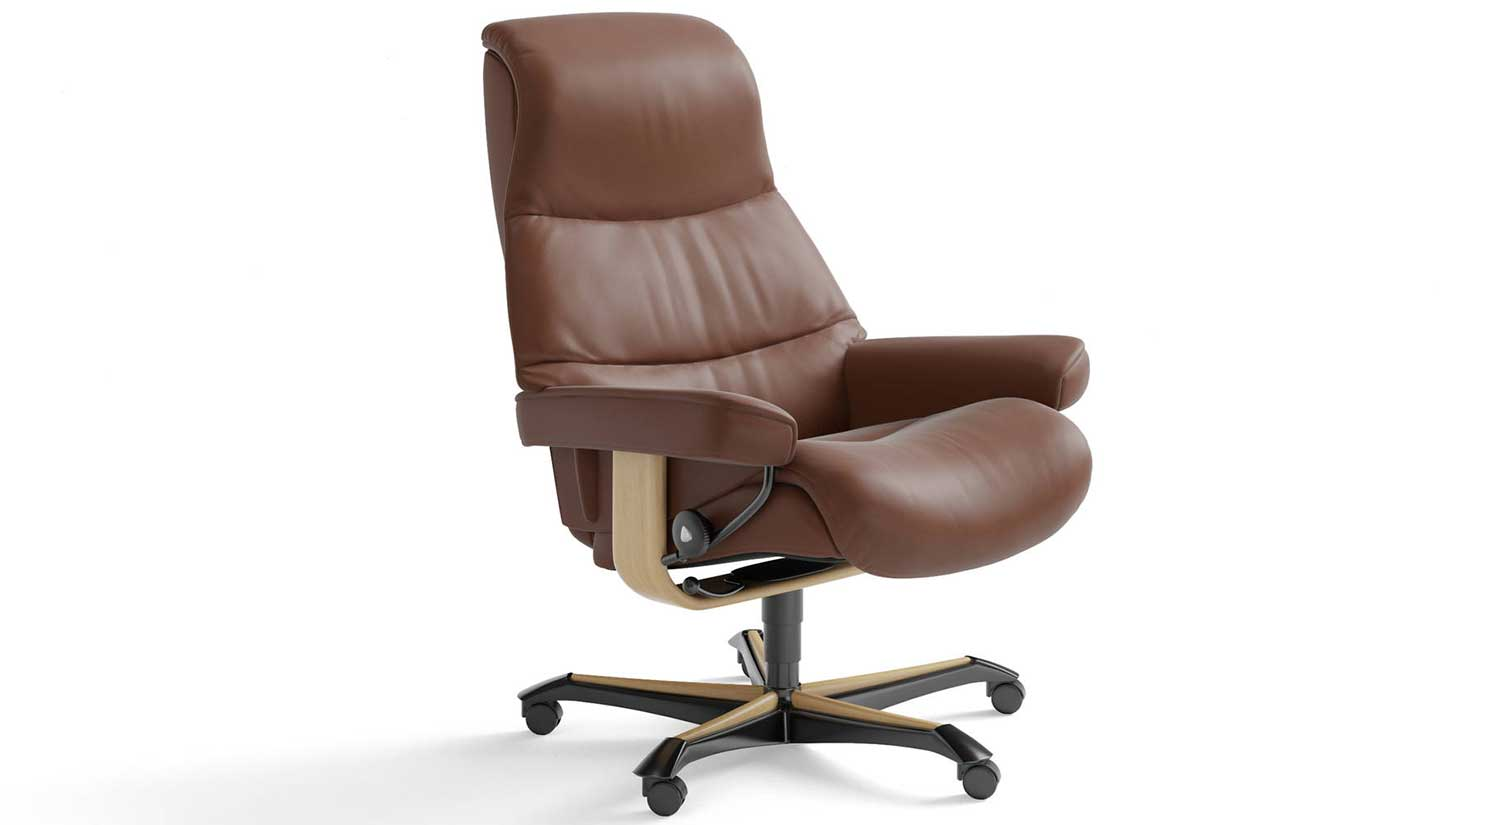 Stressless Office Chair Circle Furniture View Stressless Office Chair Desk